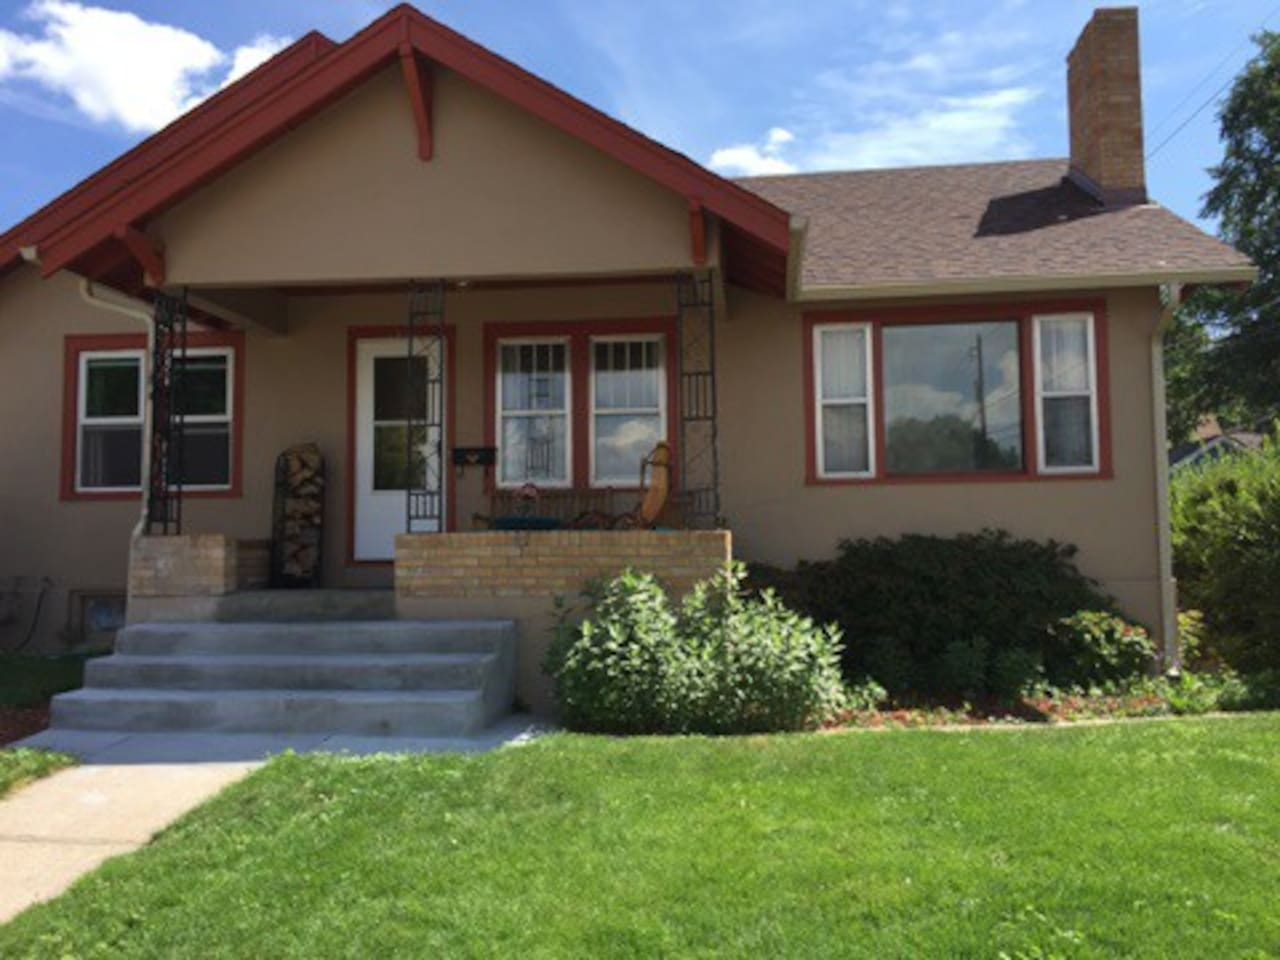 Our historic home, a short walk from everything downtown Cheyenne has to offer - including parks, bakeries, breweries, coffee, bars, burgers and more!